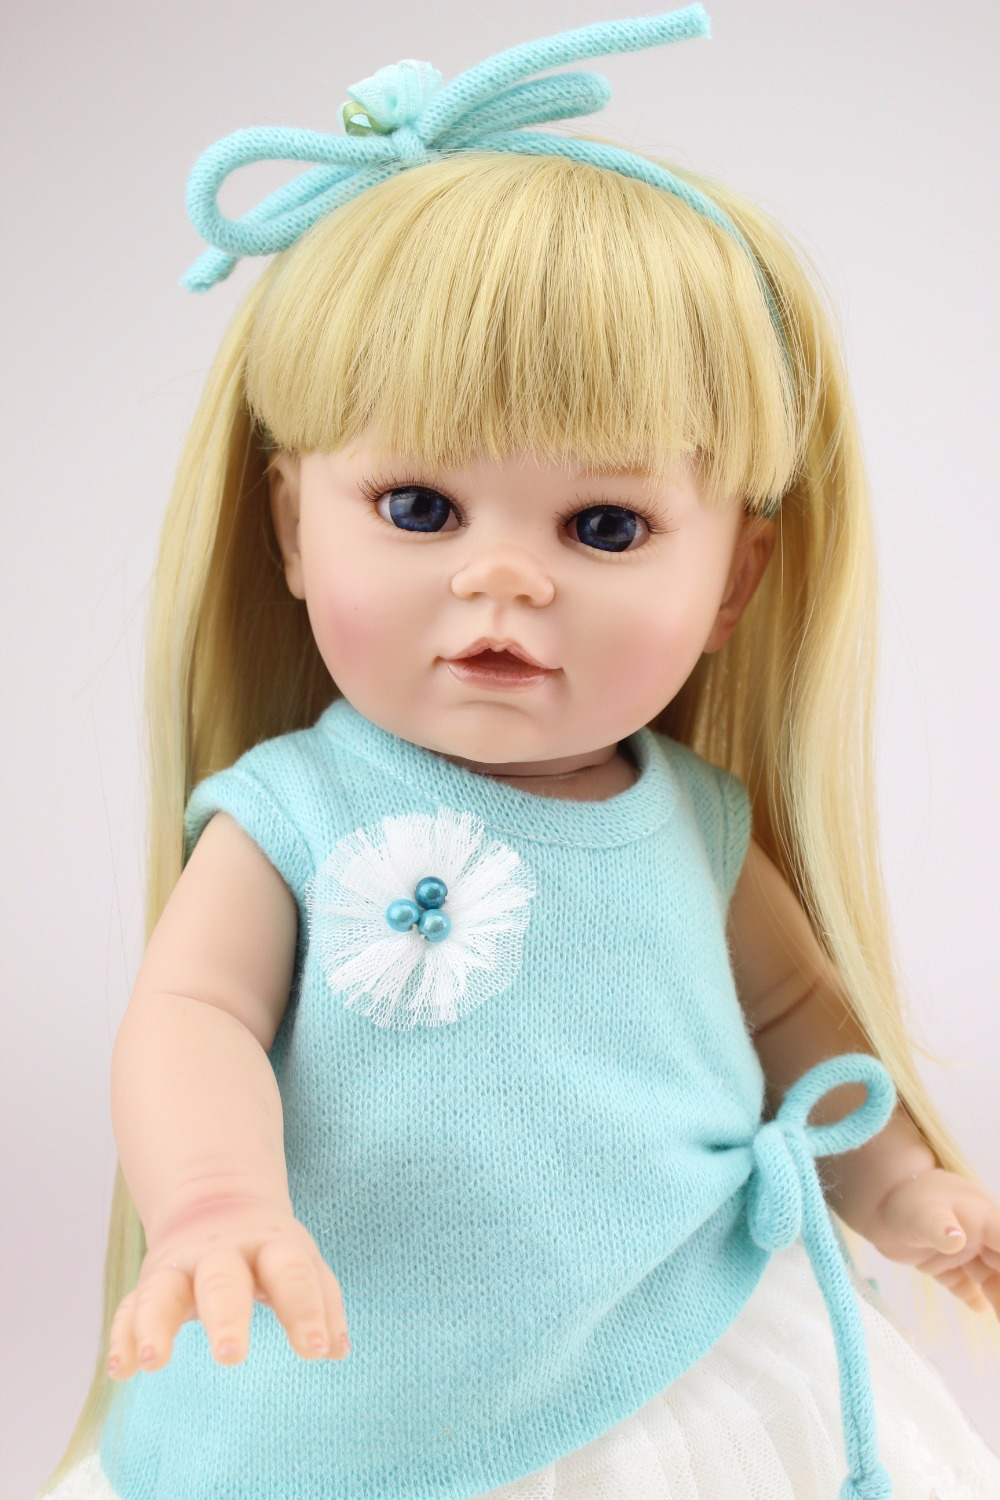 Buy New Style 16 inches Baby Doll Fat American Girl Design Reborn Living doll Soft Solid Silicone Toys Free Shippinh